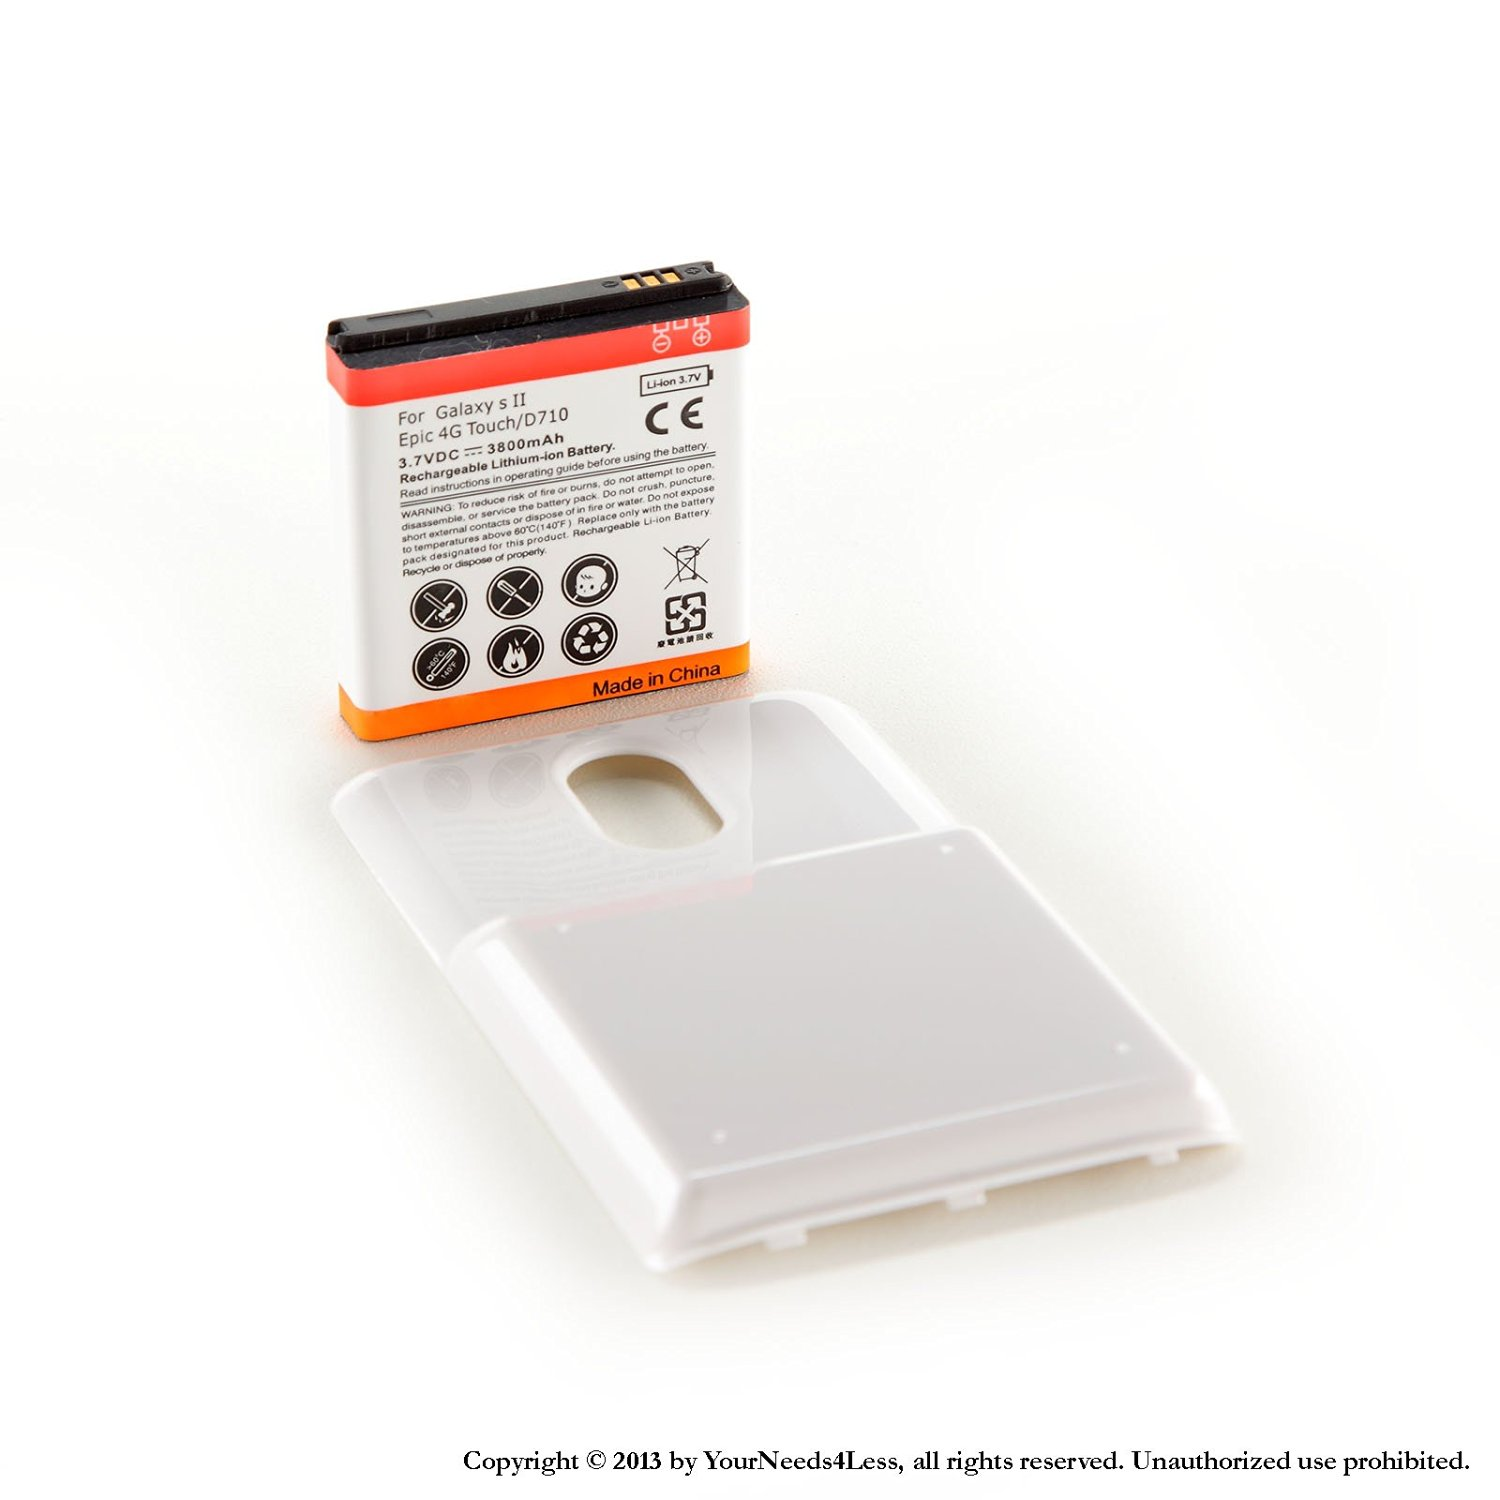 YN4L® 3800mAh extended battery for Samsung Galaxy S II Epic 4G Touch D710 Sprint + White cover